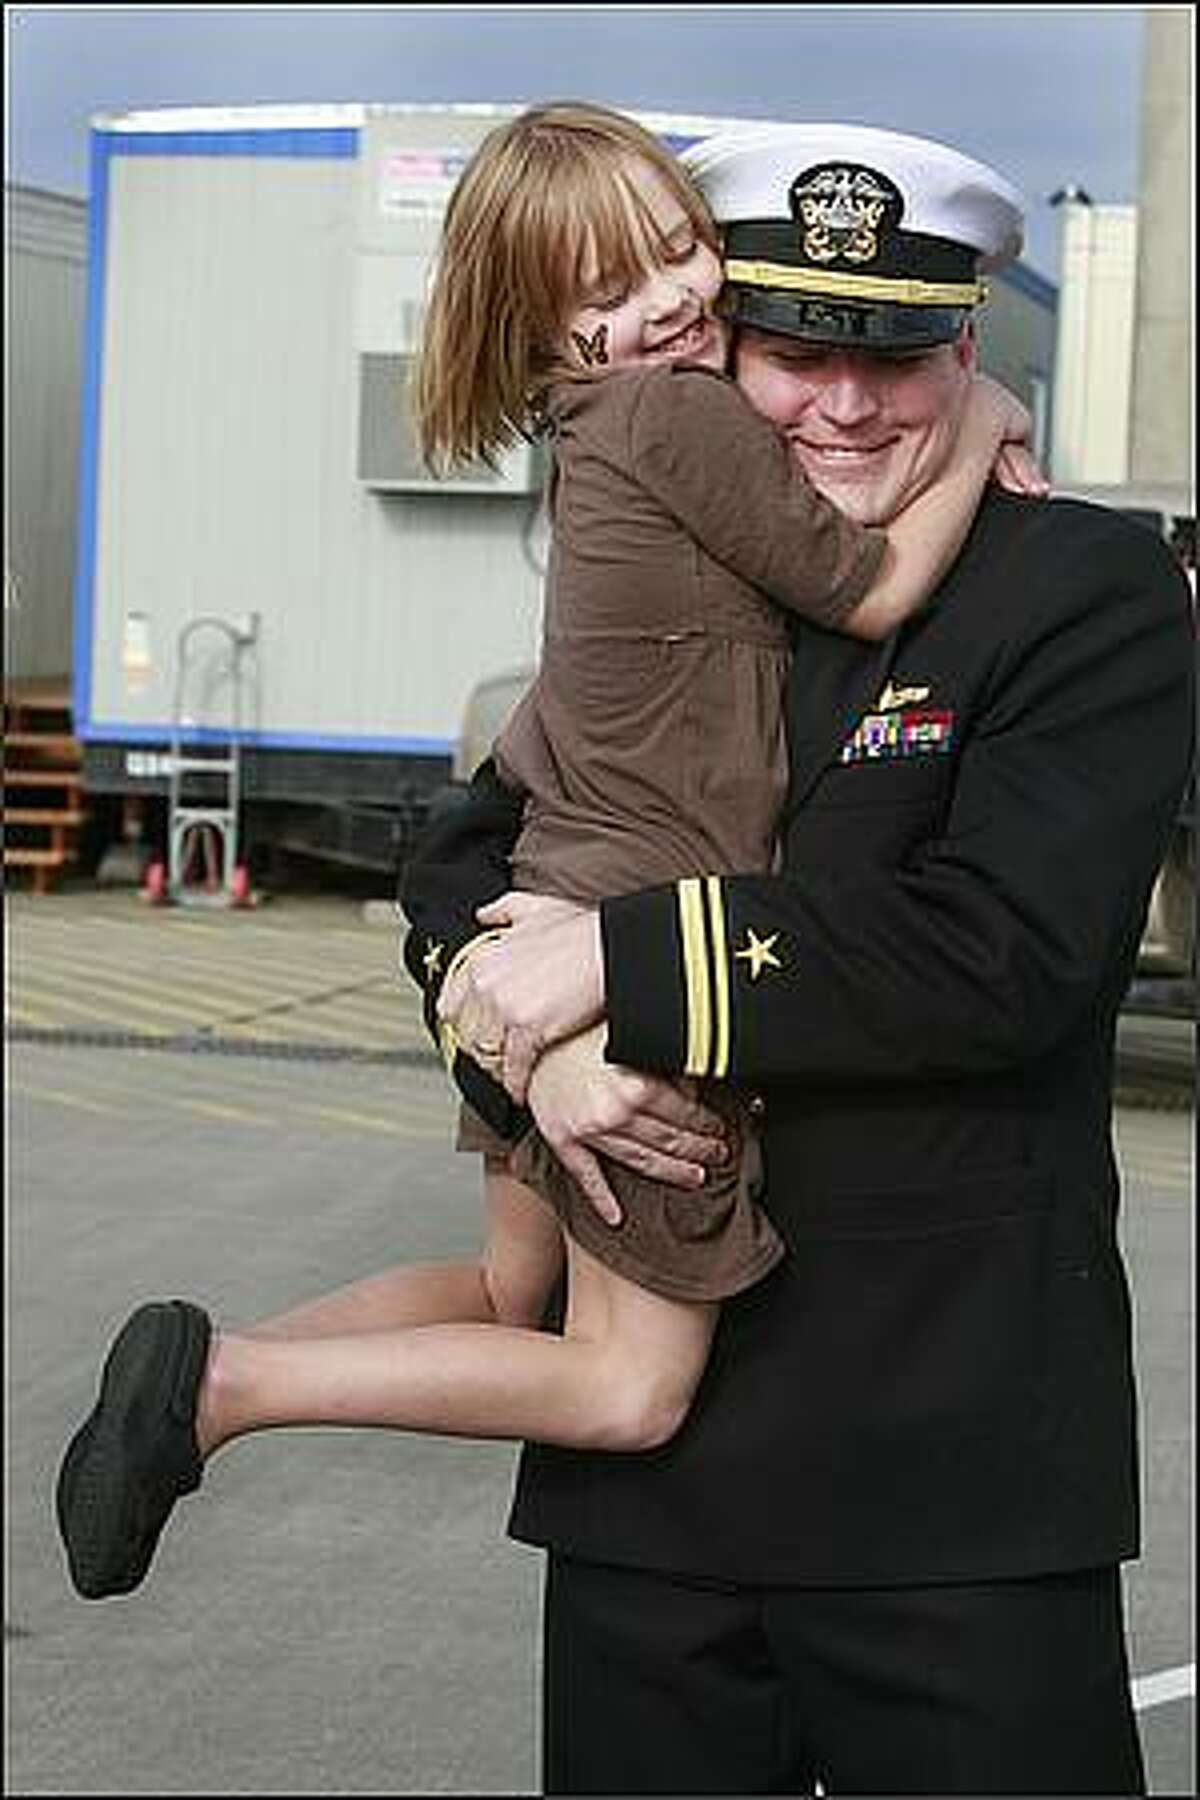 Colleen Huchton, 6, hugs her dad, LTjg Scott Huchton as he arrives home after a seven month deployment on the USS Abraham Lincoln.